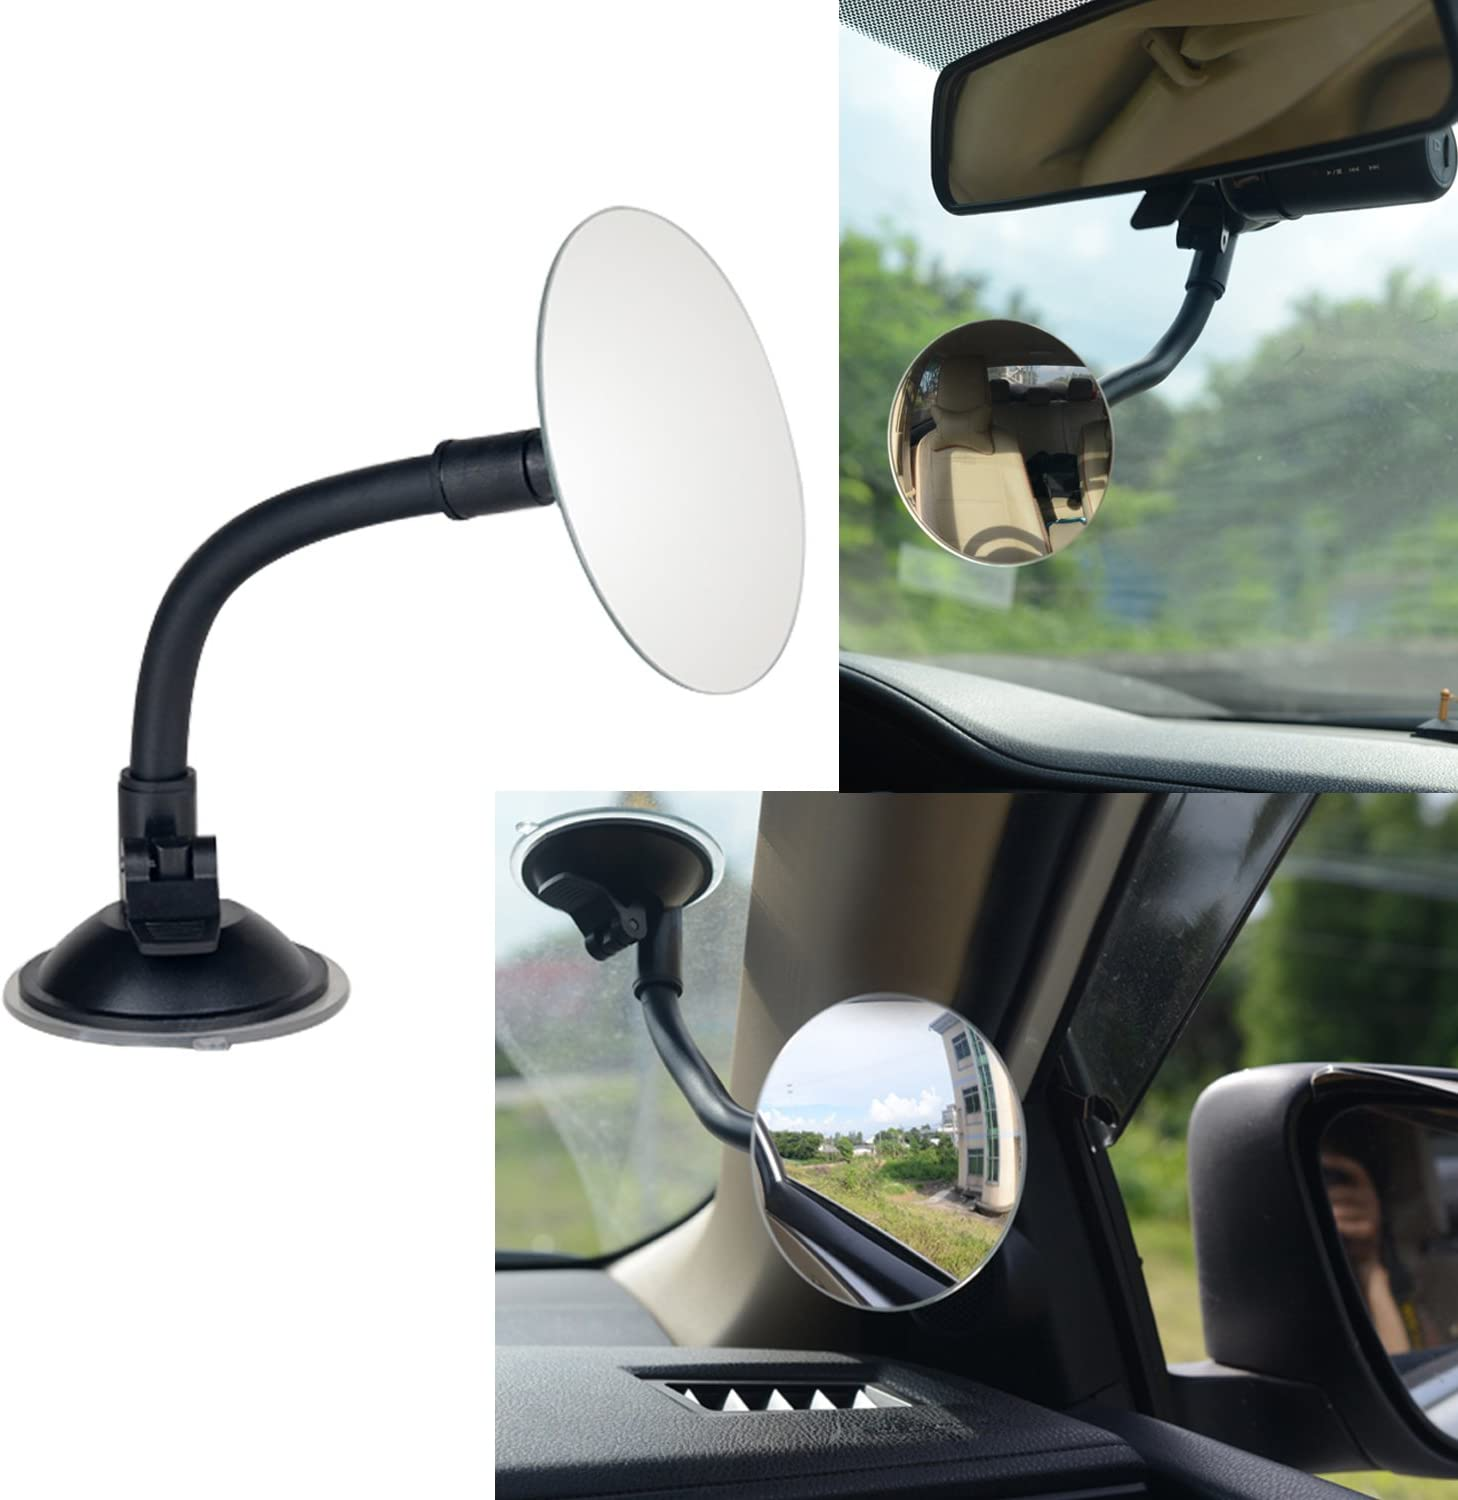 "3.35"" Round Blind Spot Mirror/Rear Facing Mirror, Ampper 360?? Rotate Adjustabe Suction Cup/Long Arm HD Glass Convex Wide Angle Rear View Universal Fit Lens"